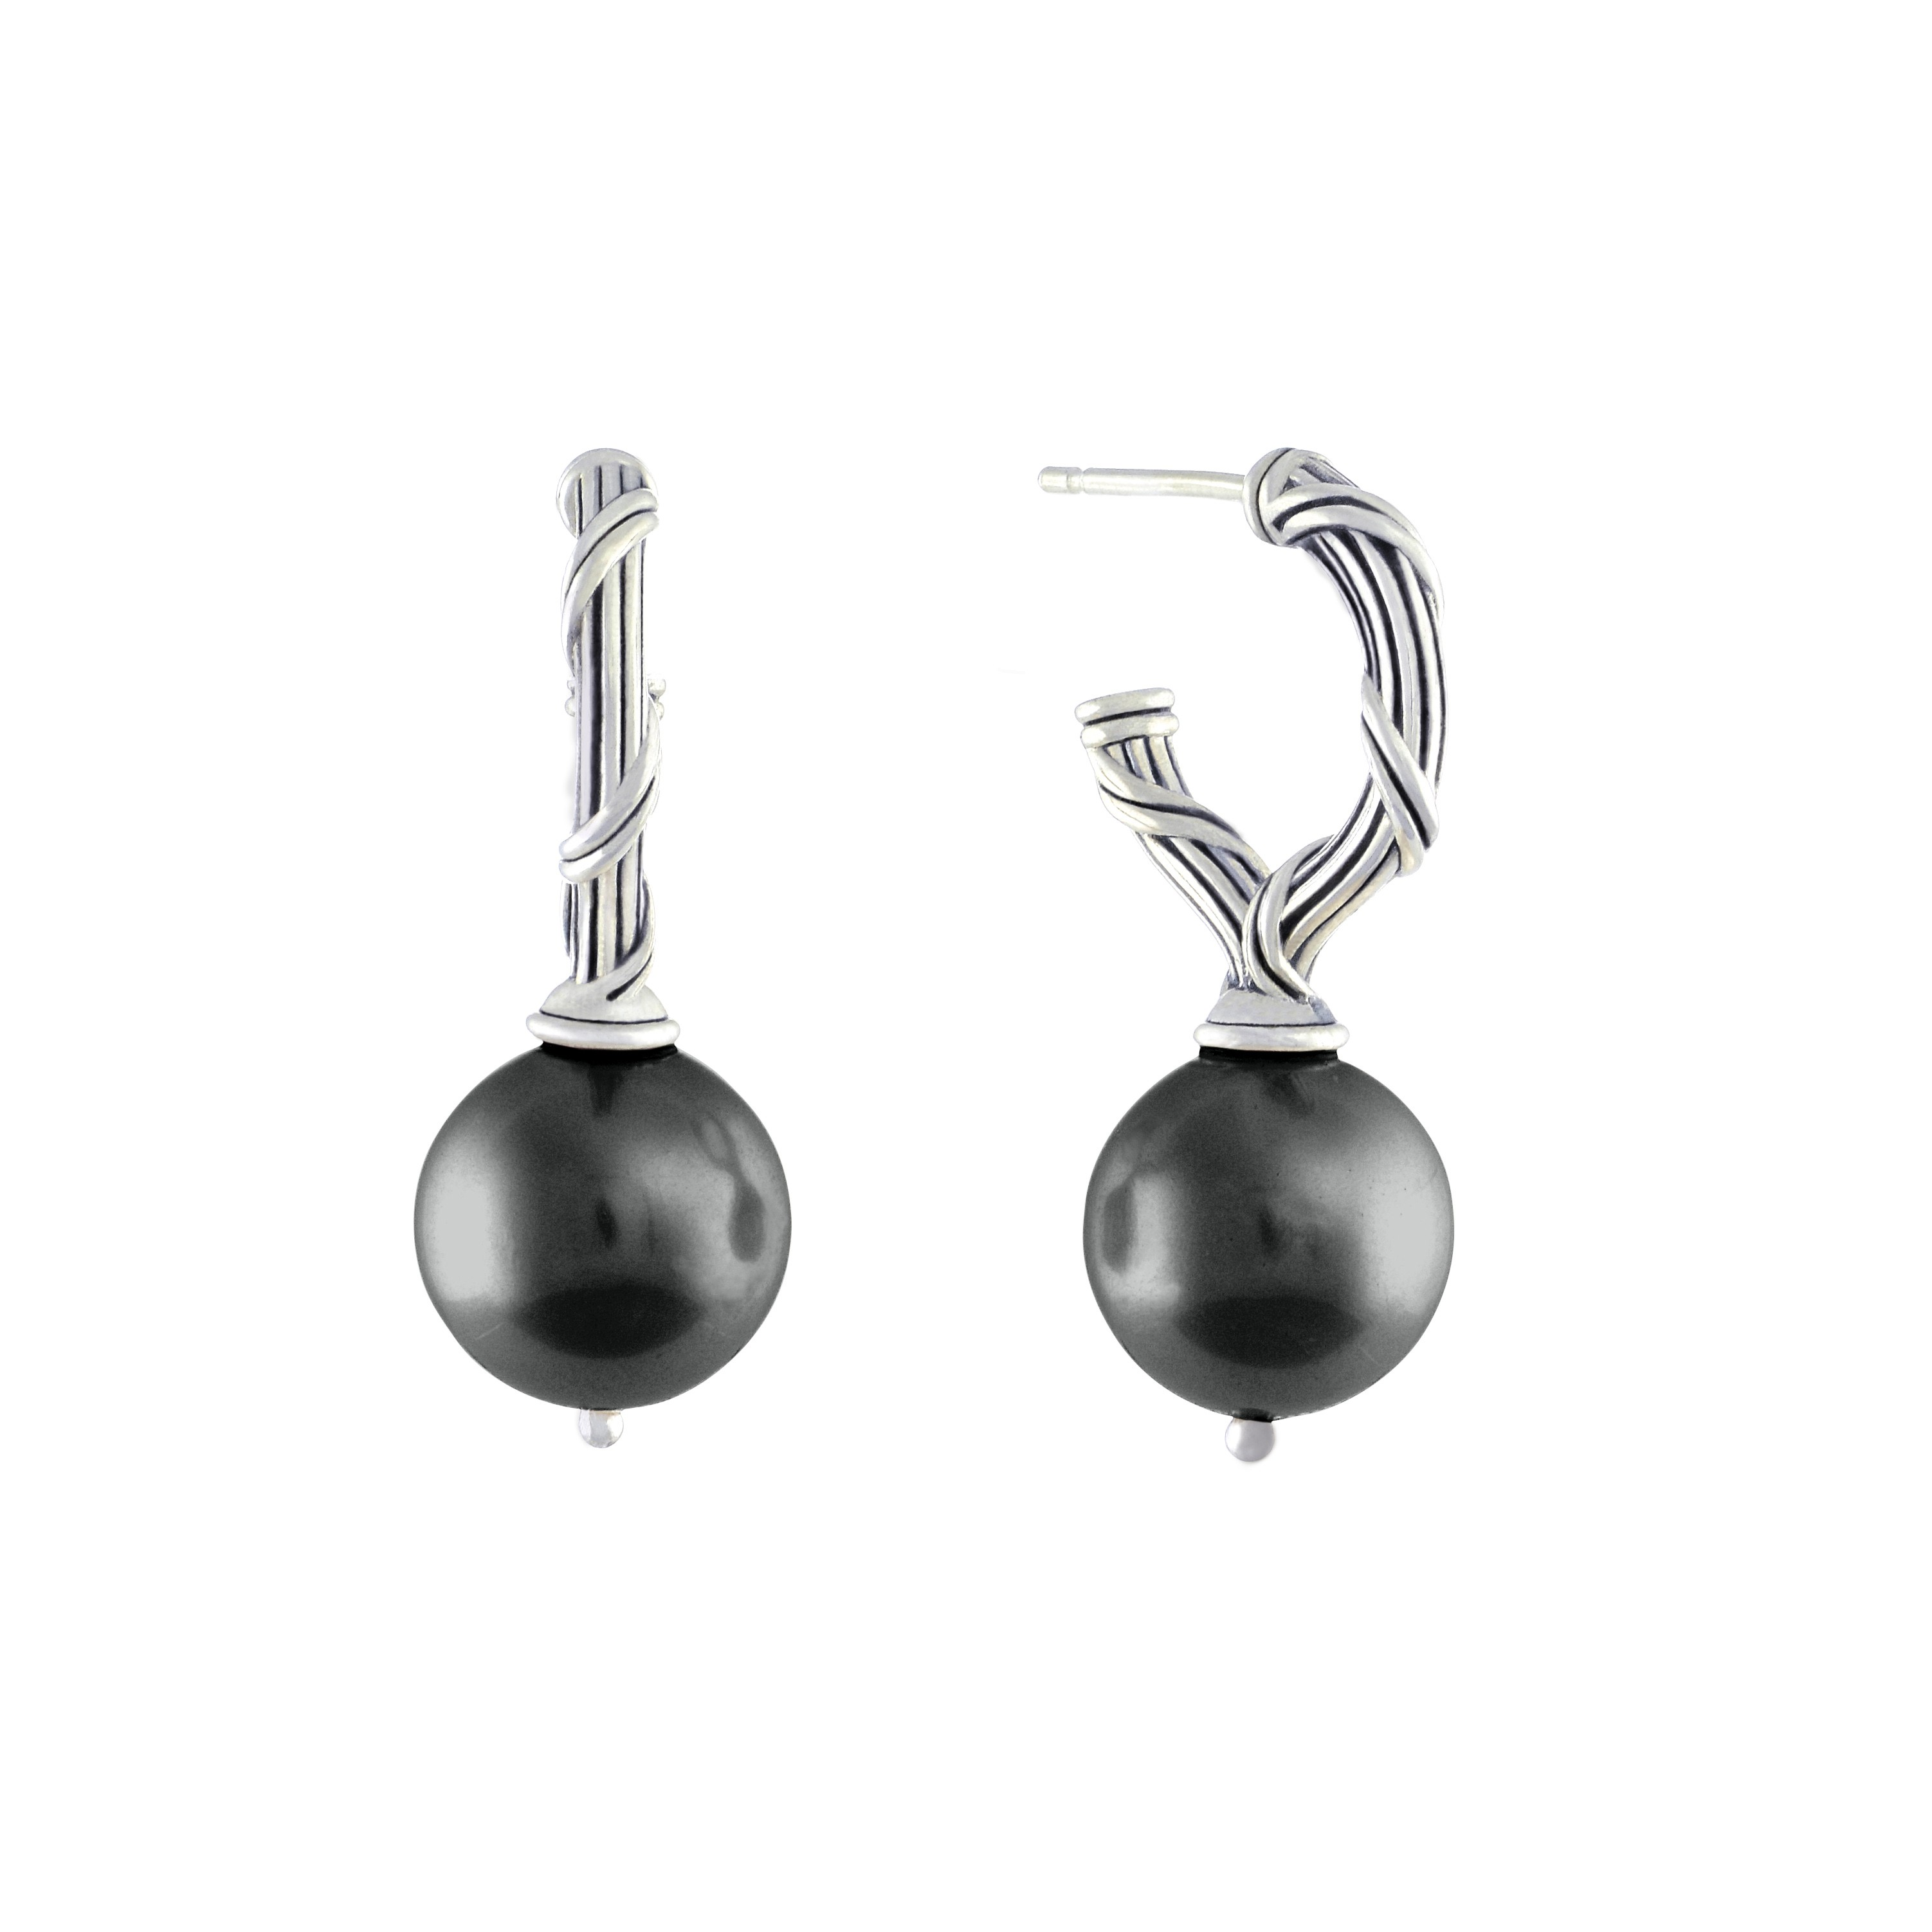 Bead Earrings with black sea shell pearls in sterling silver